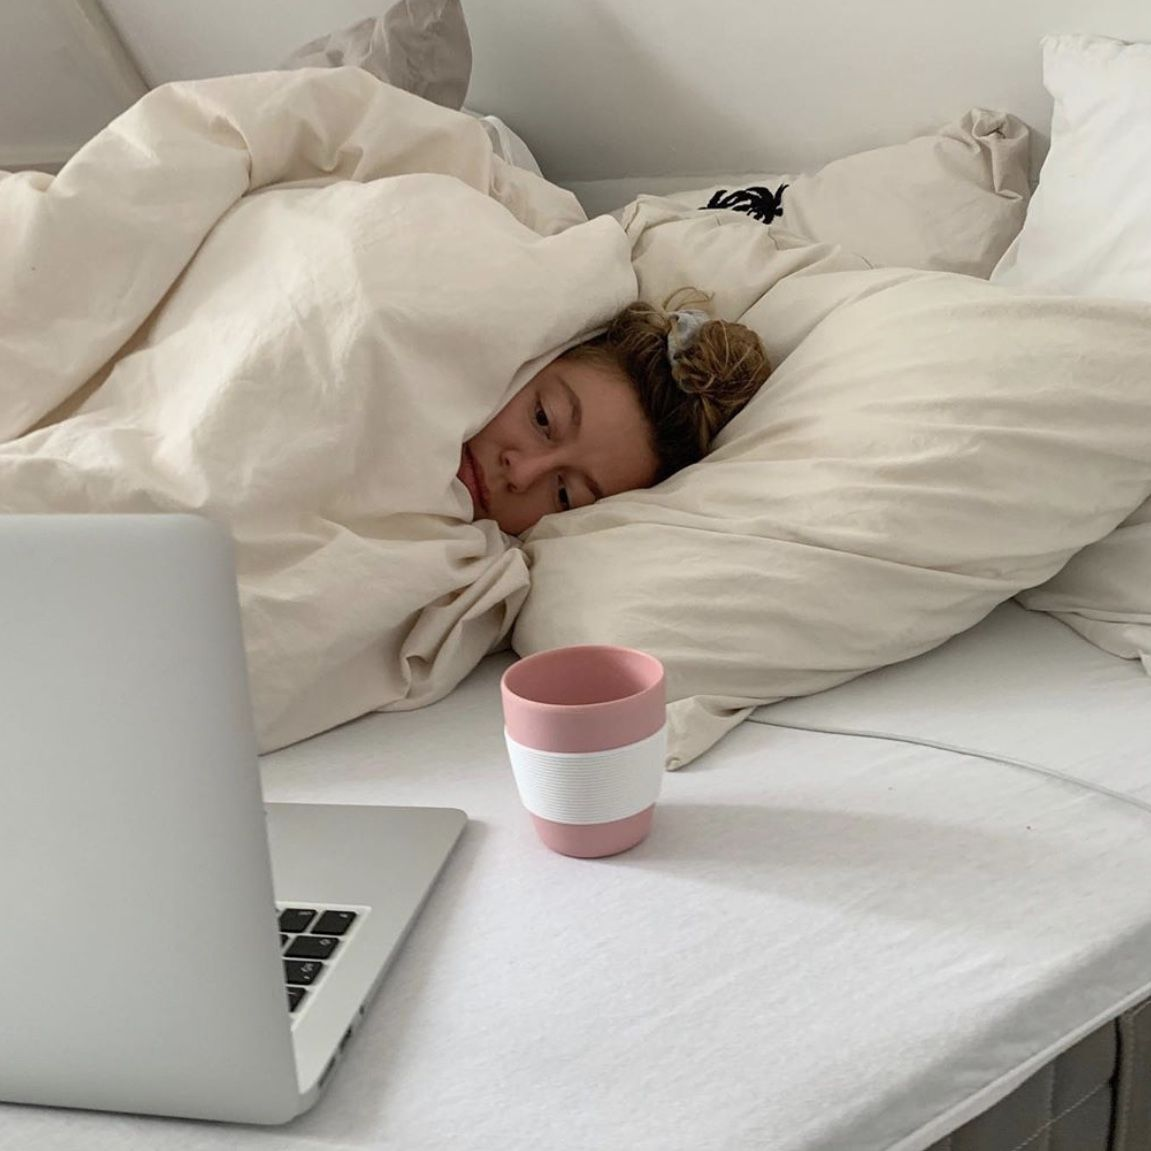 online classes be like in 2020 | Mood, Comfy cozy, Instagram inspiration